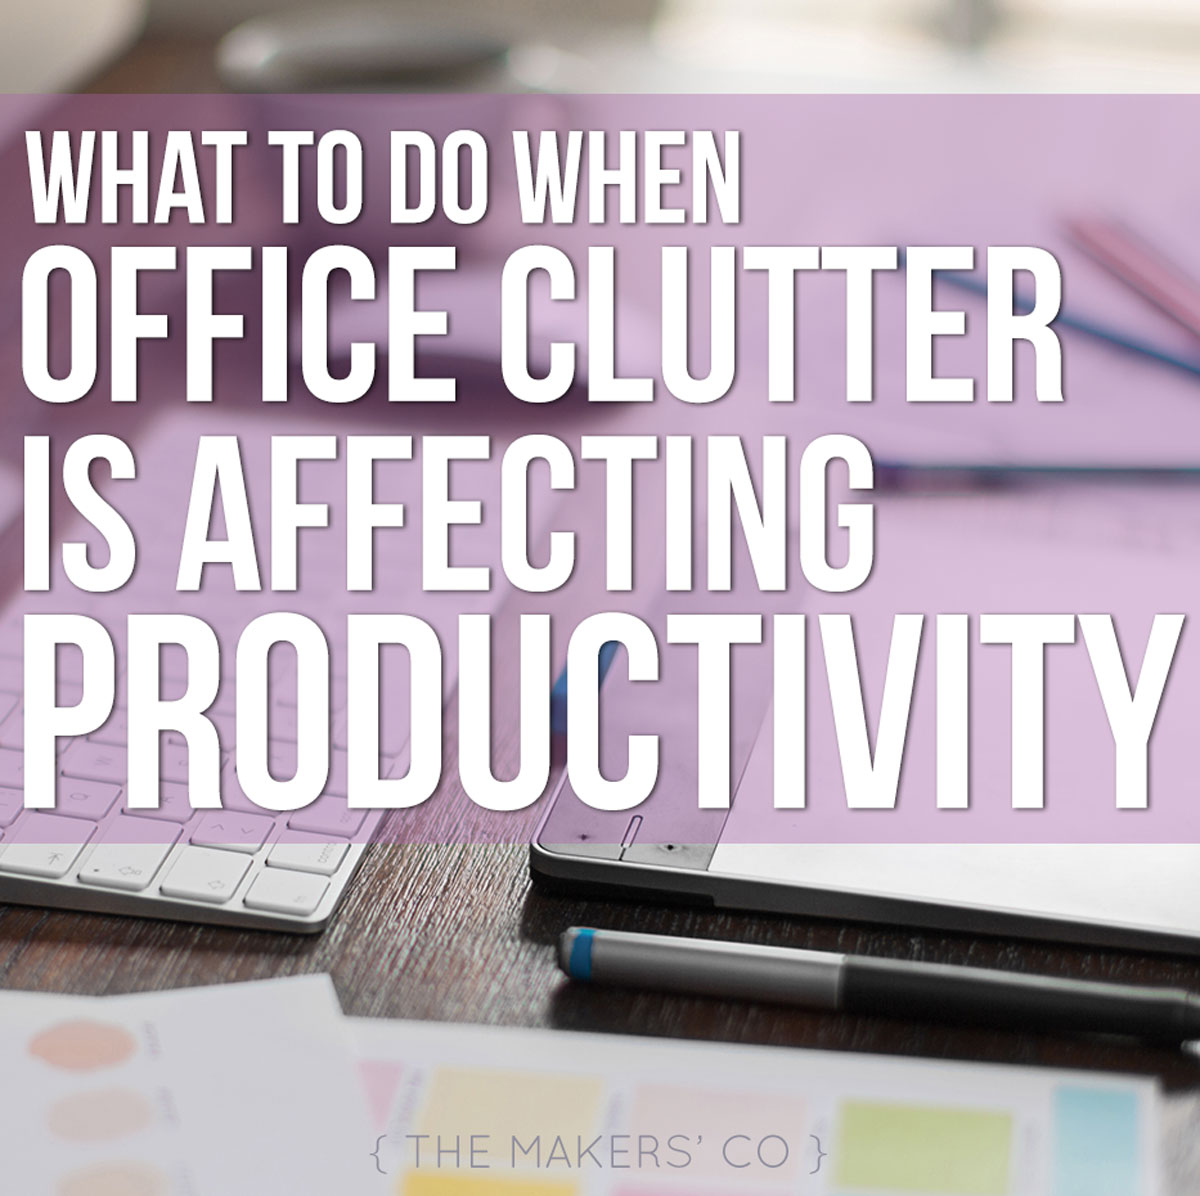 Clutter affecting productivity